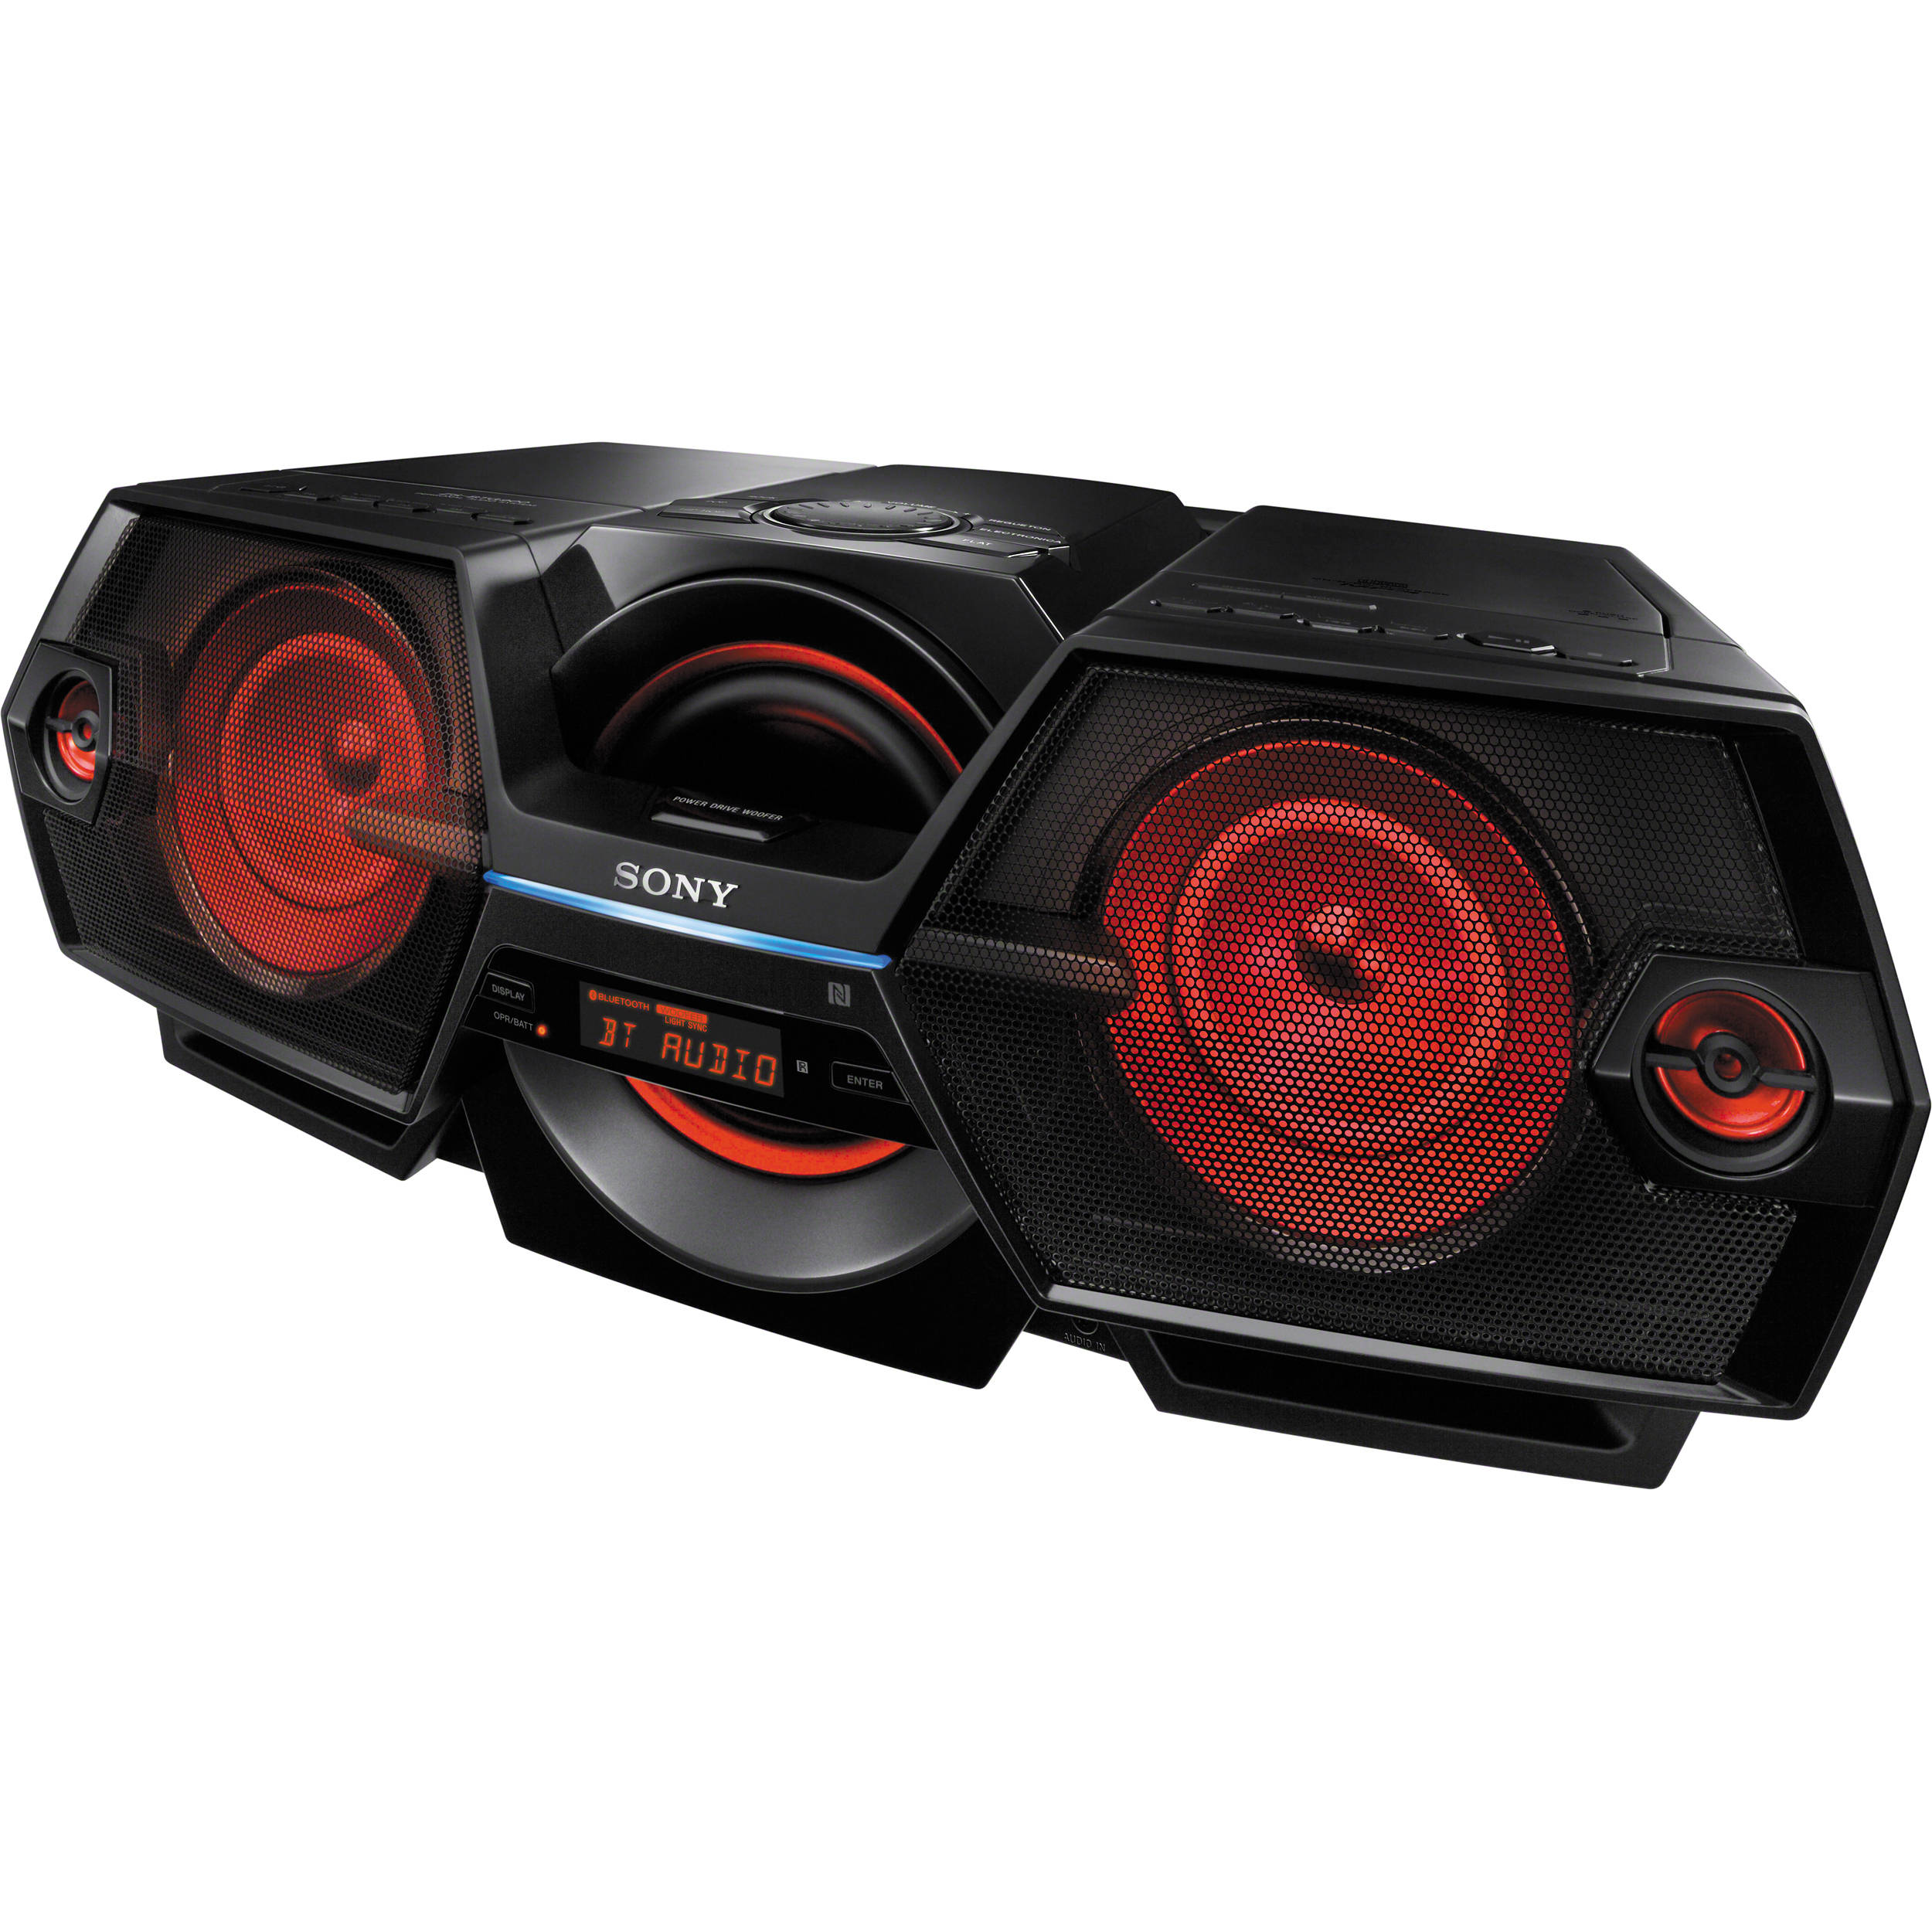 160939302857 likewise 7786036 furthermore Sony zs btg900 wireless boombox system as well Duet 2 additionally Watch. on boom box with cd player